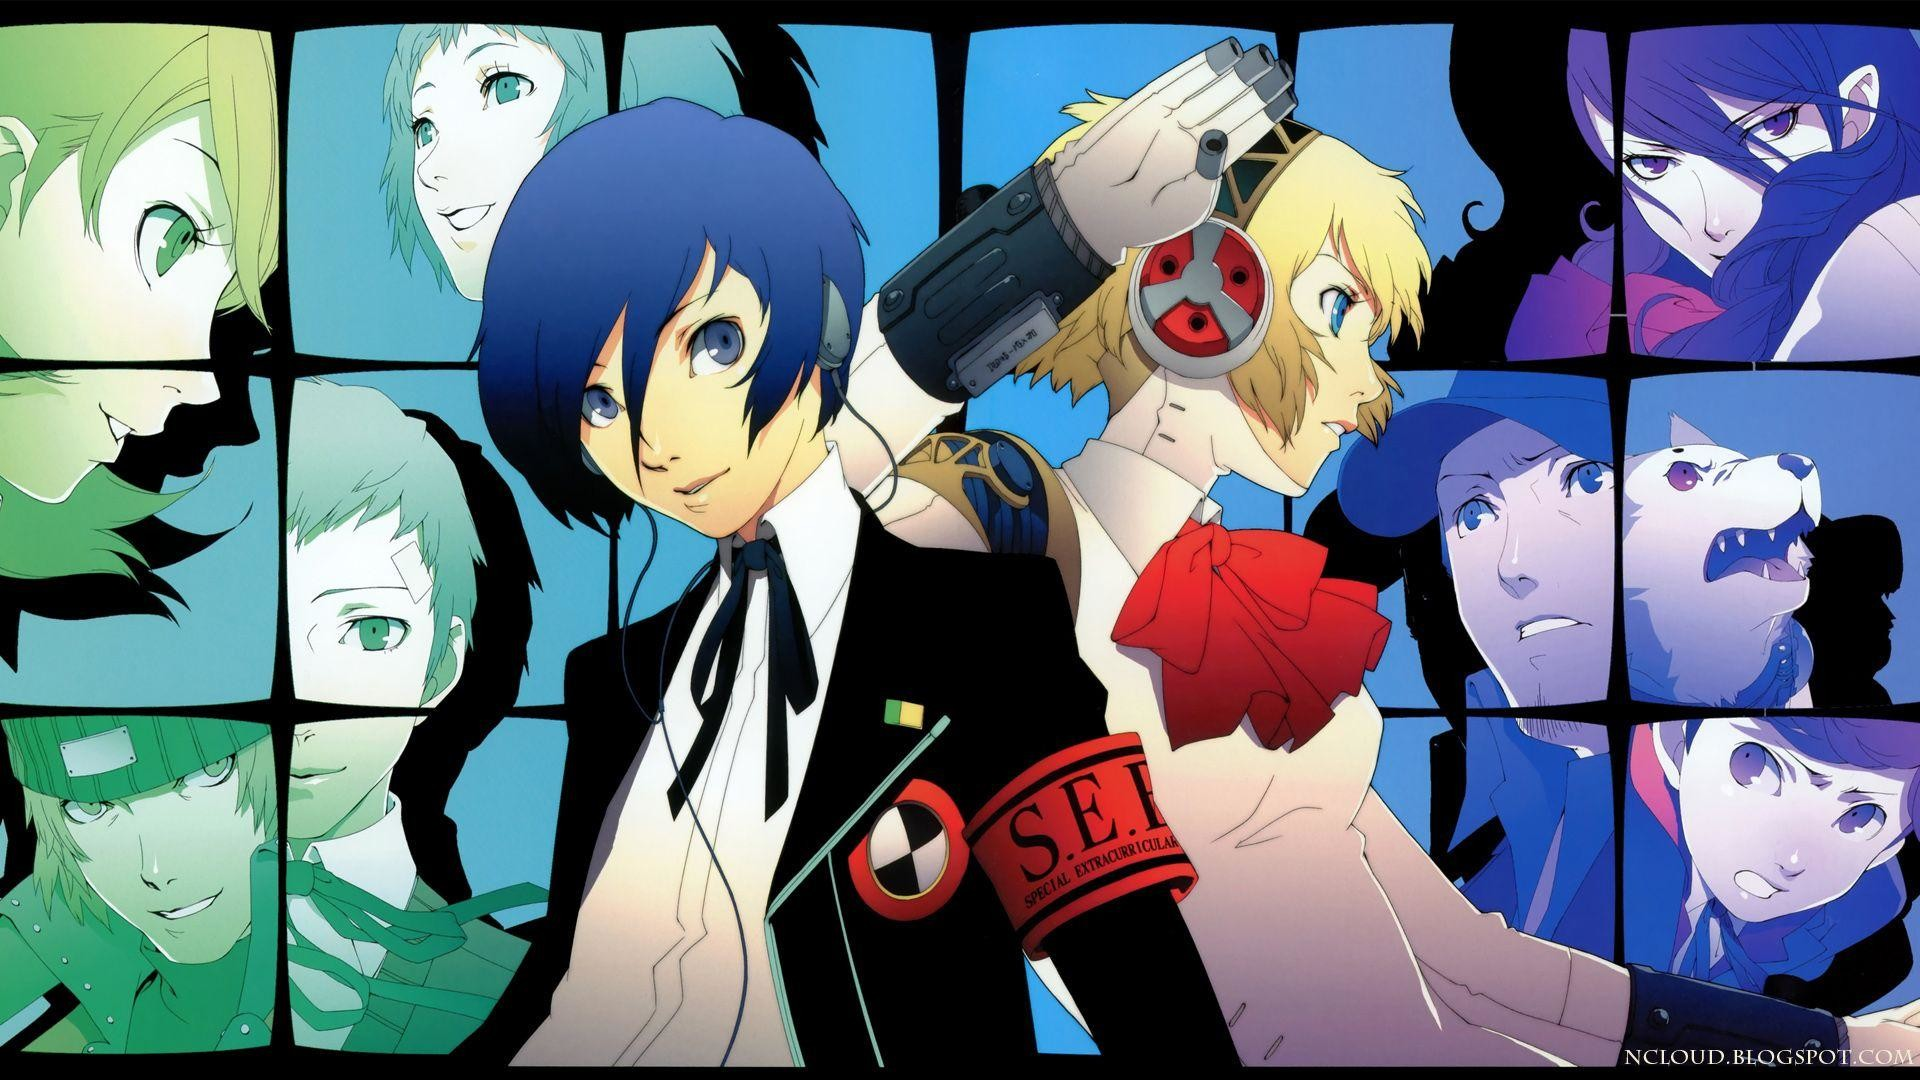 1920x1080 Wallpapers For > Persona 3 Fes Wallpaper Hd